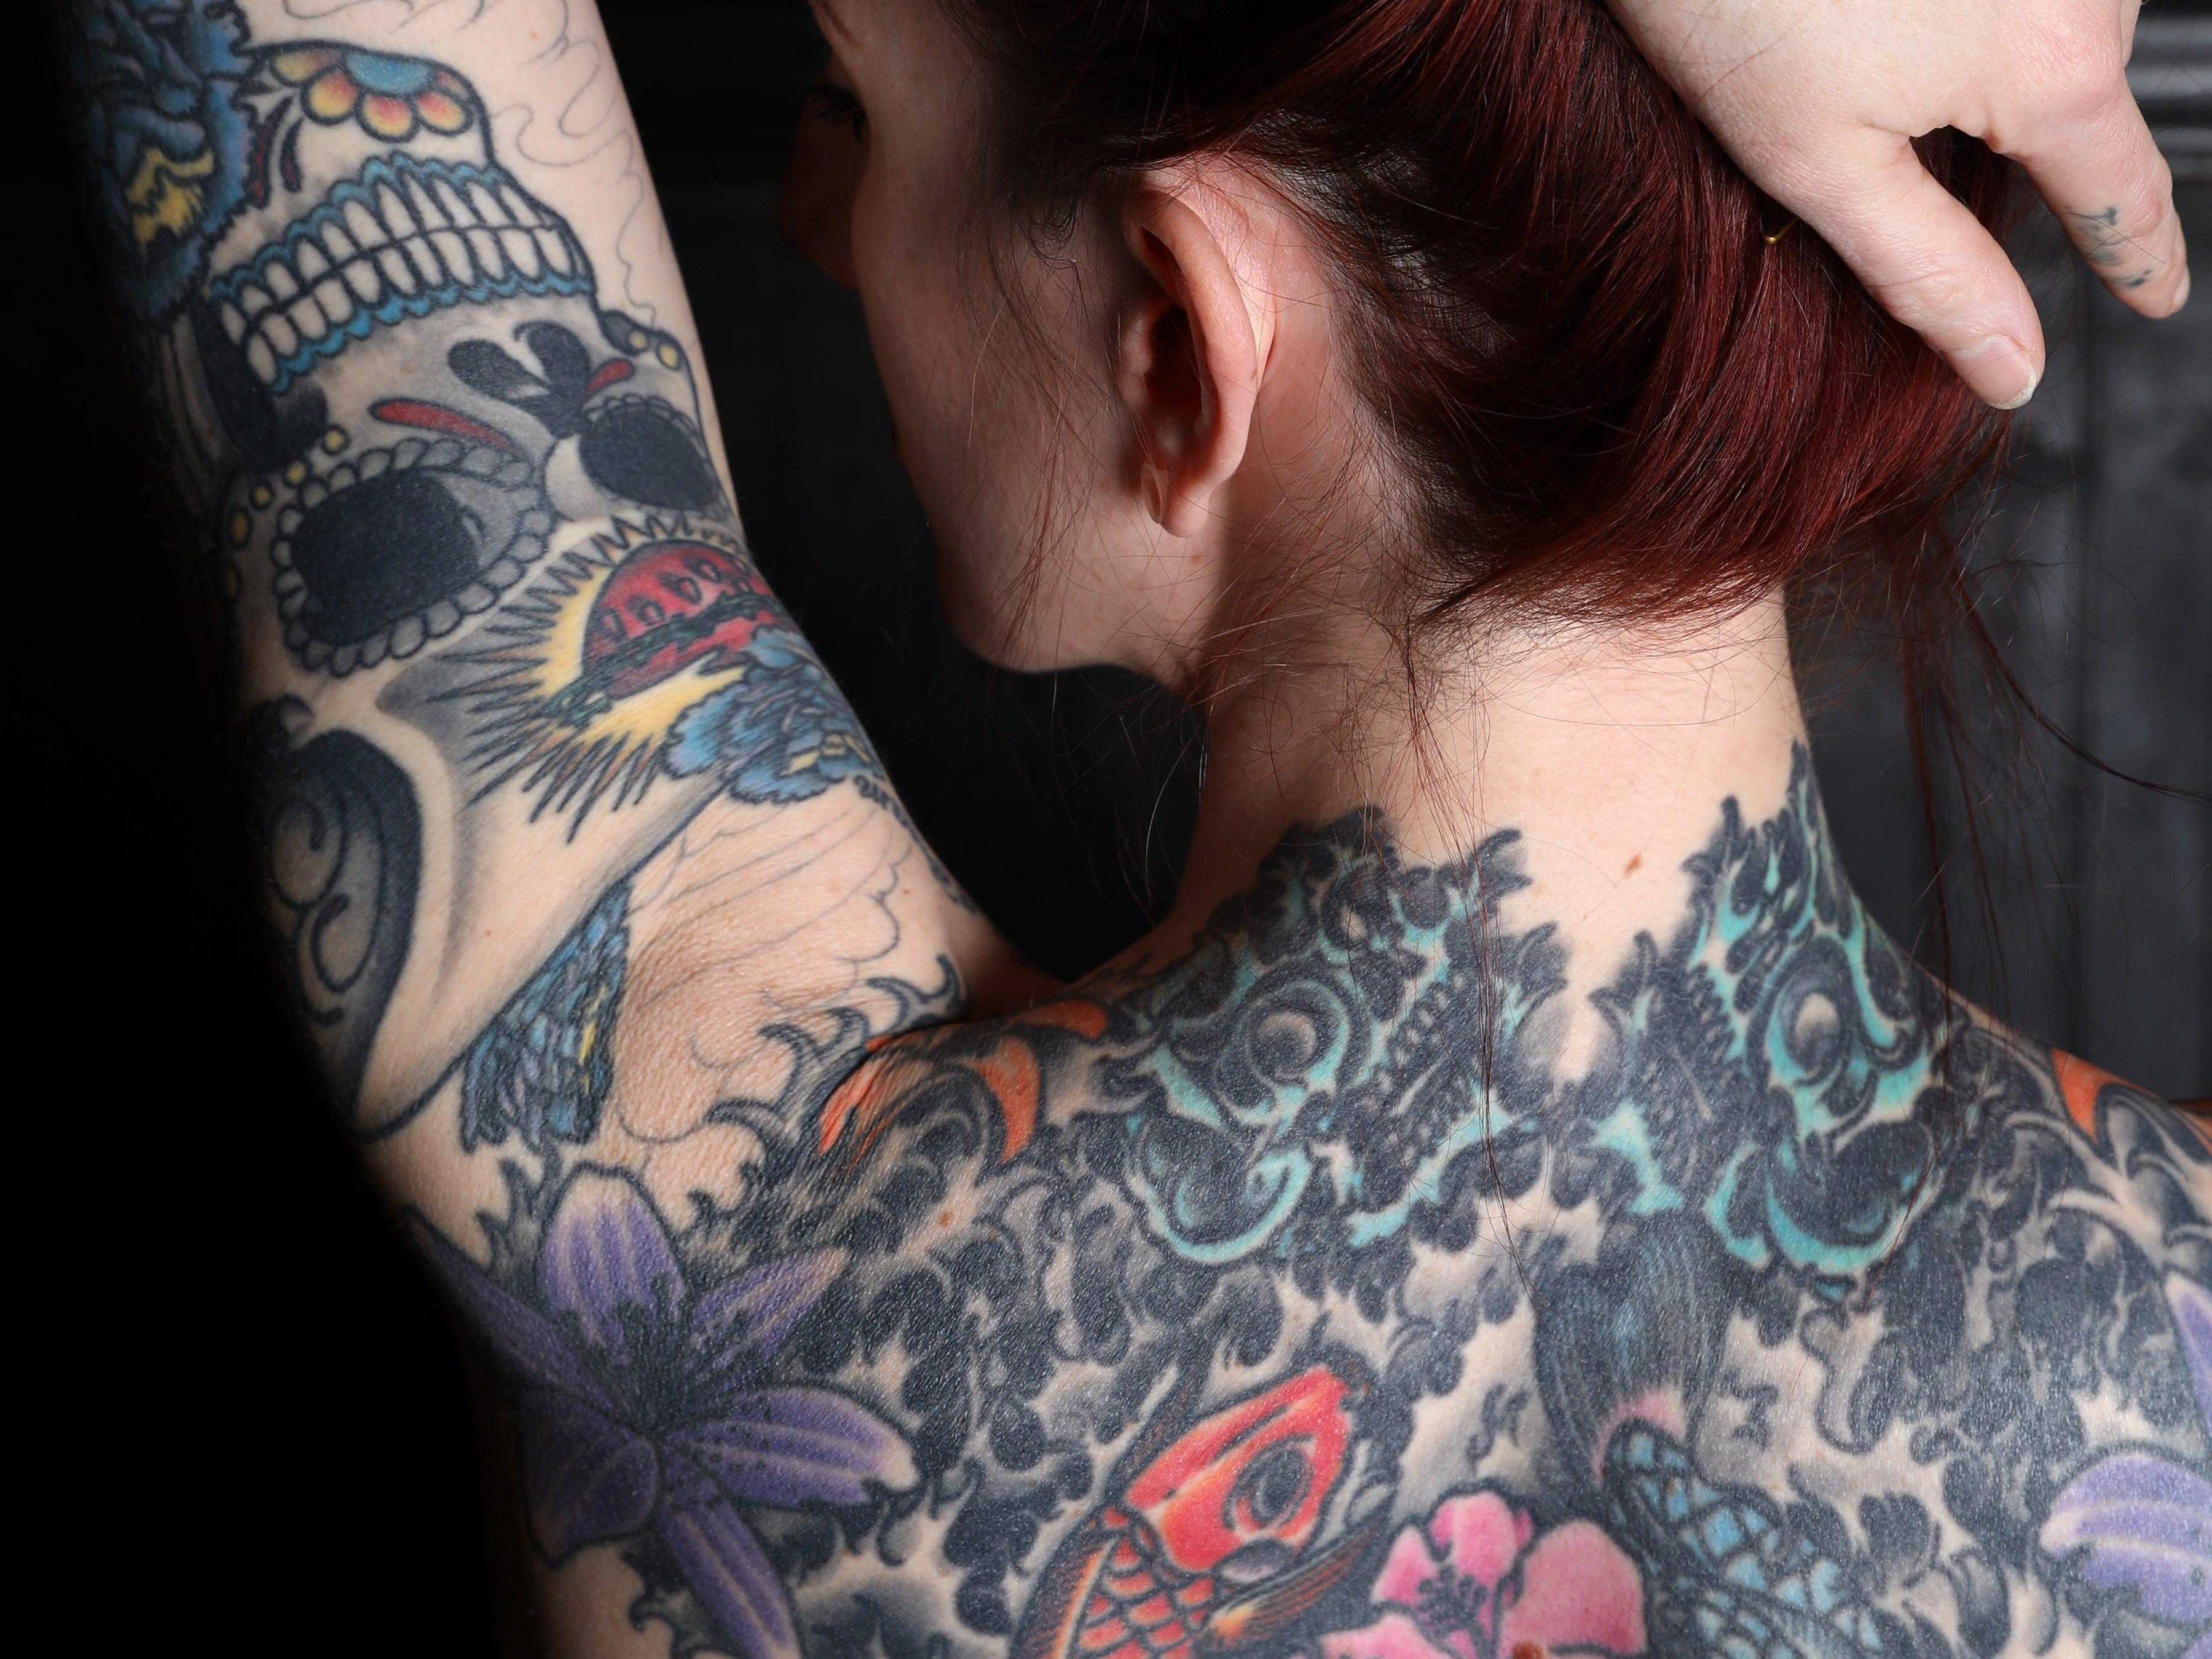 Chef Sajin Renae Perino shows her arm and back tattoos; which include sunflowers dedicated to her daughter and two fish, a nod to her and her mother's Pisces zodiac sign, at The Cookery in Dobbs Ferry, where she is the chef de cuisine, March 21, 2019.